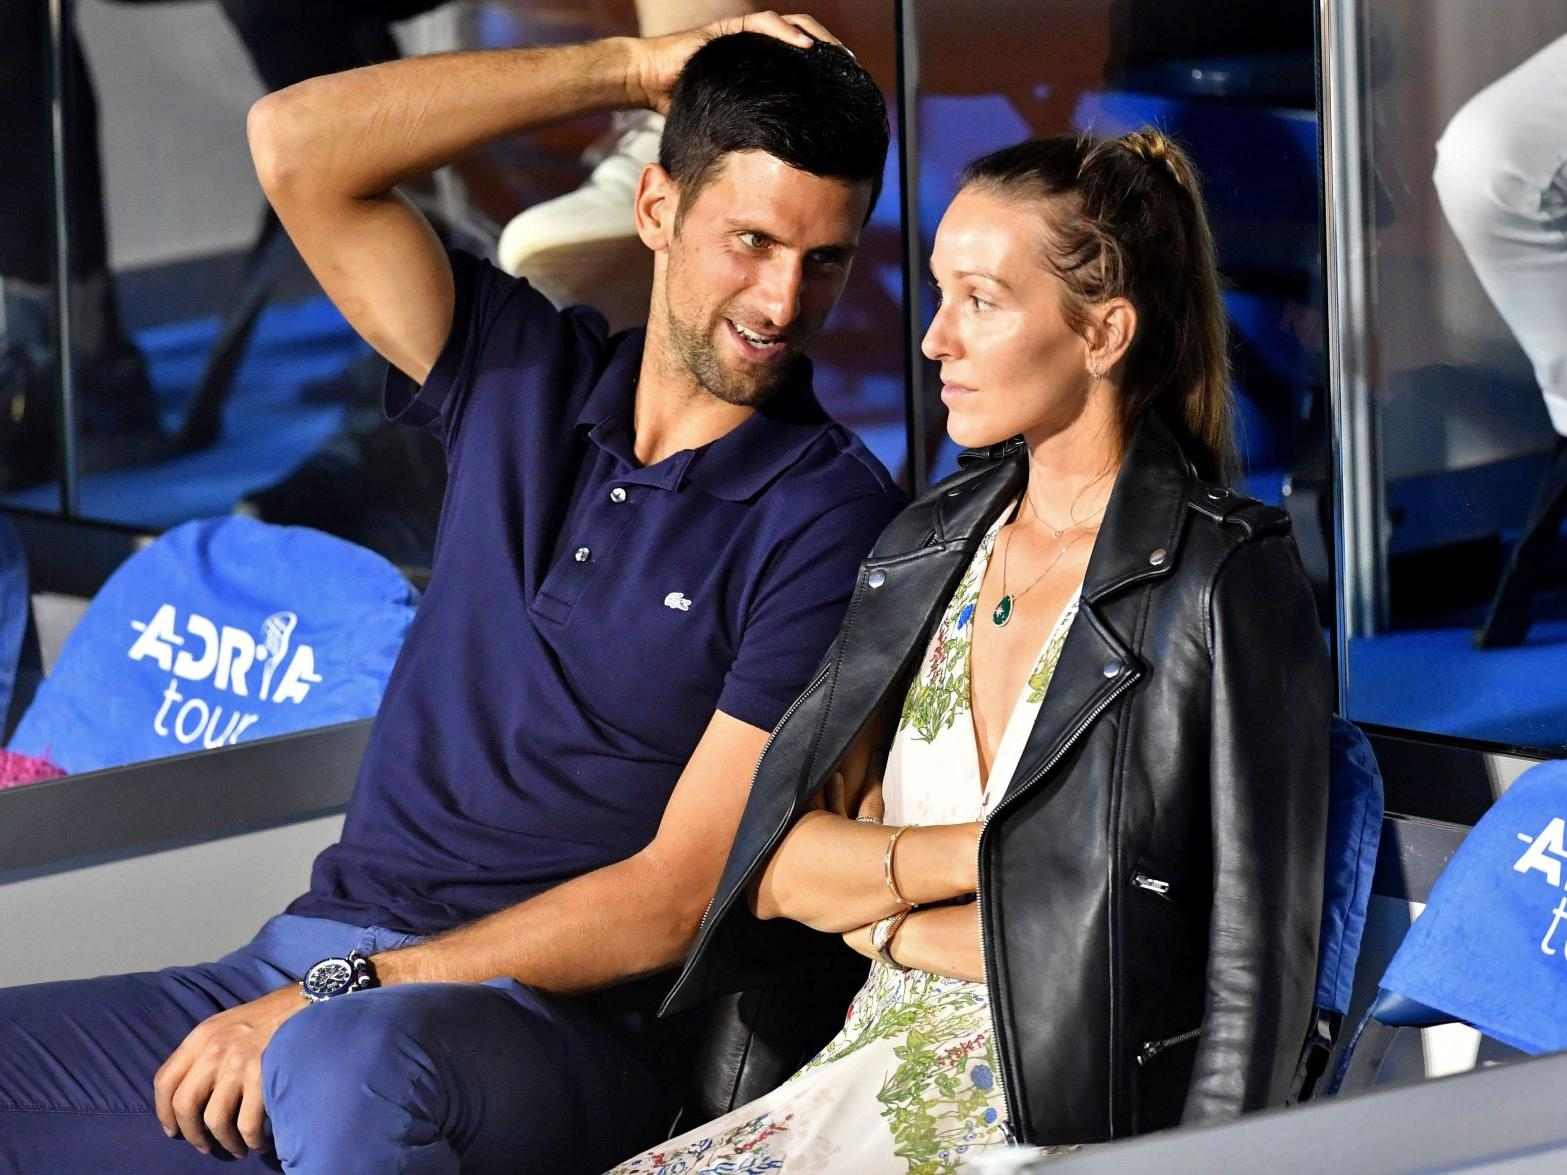 Novak Djokovic And The Adria Tour The Exhibition Event That Shocked Tennis Sports Wfsb Com